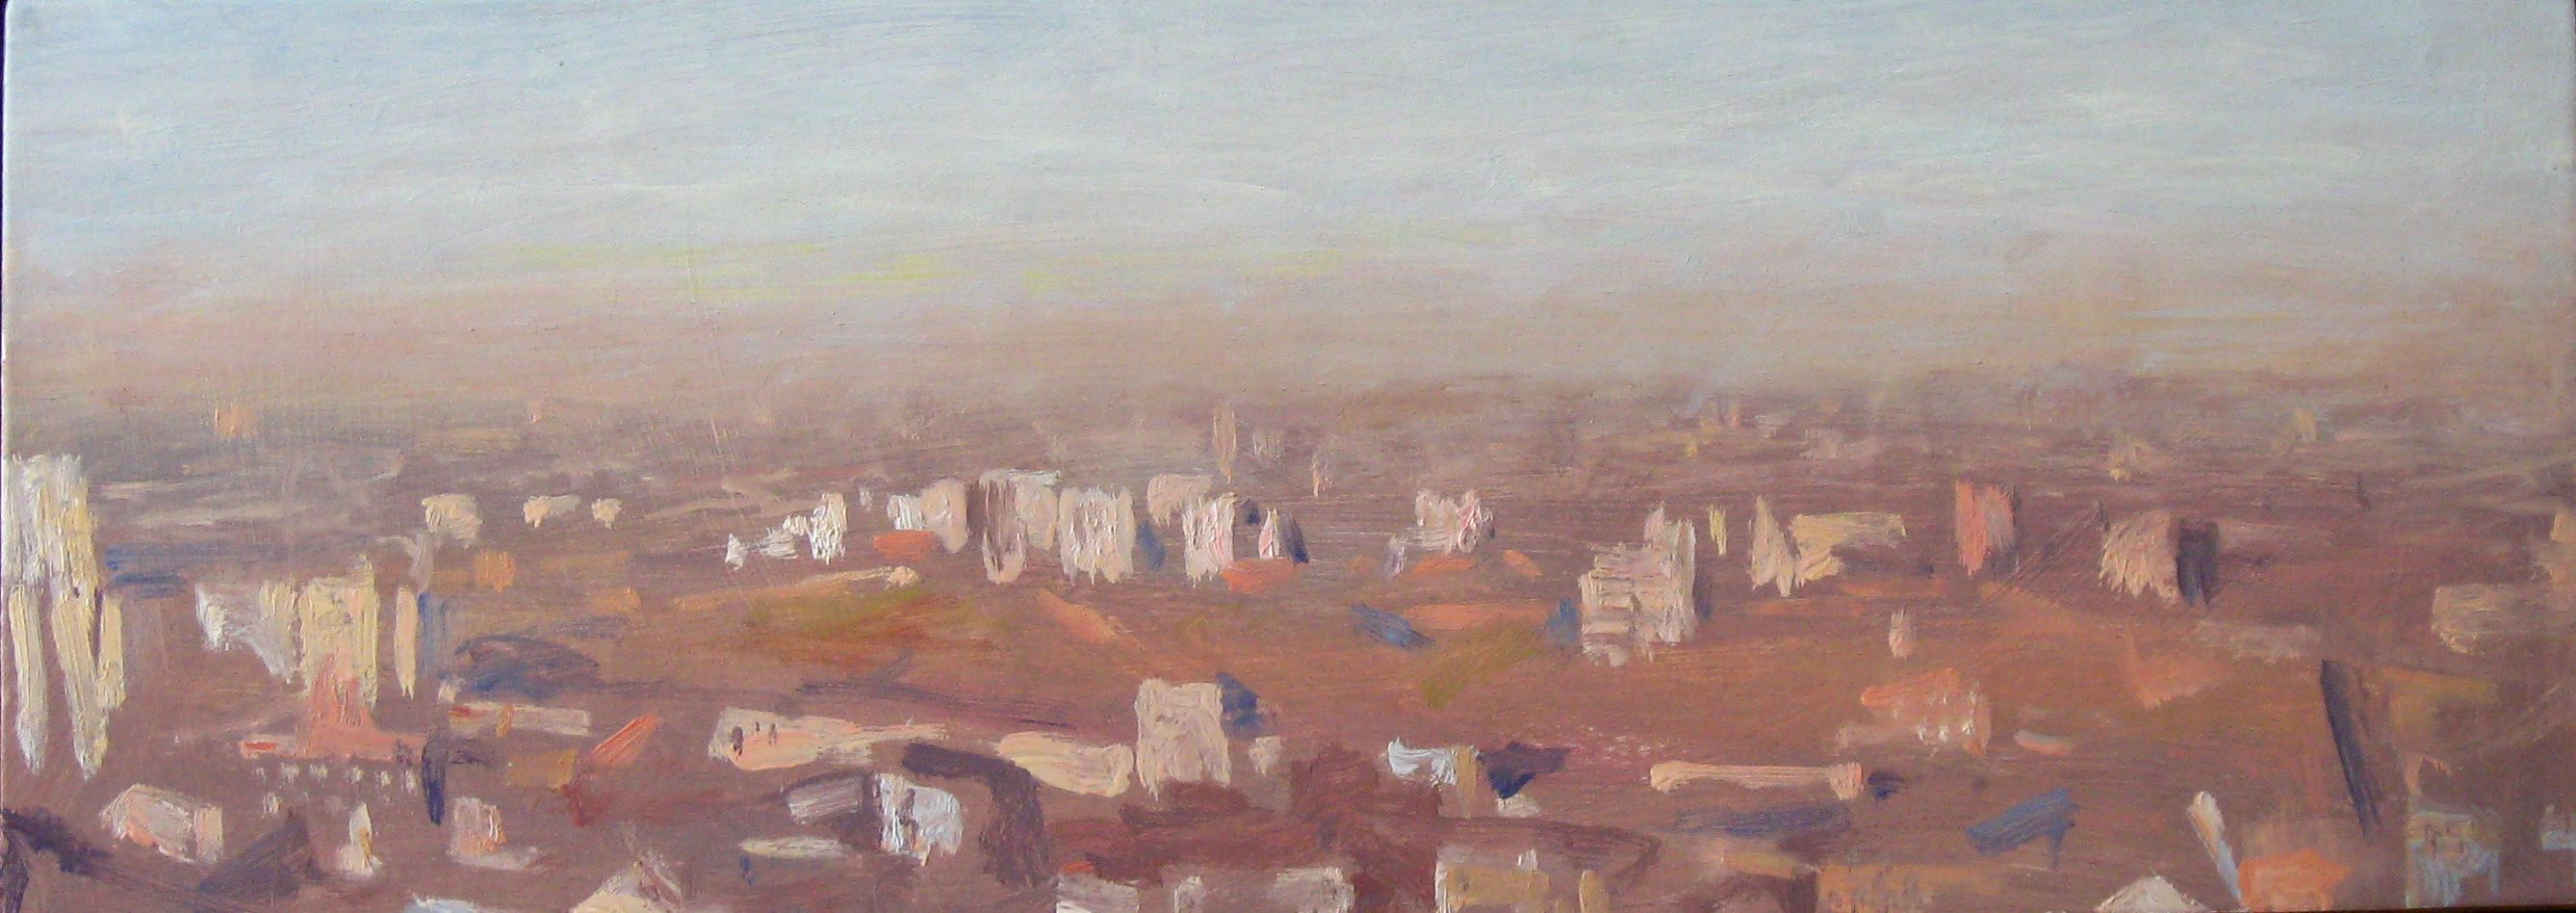 Polluted Mist,Valérie de Sarrieu,Contemporary painting